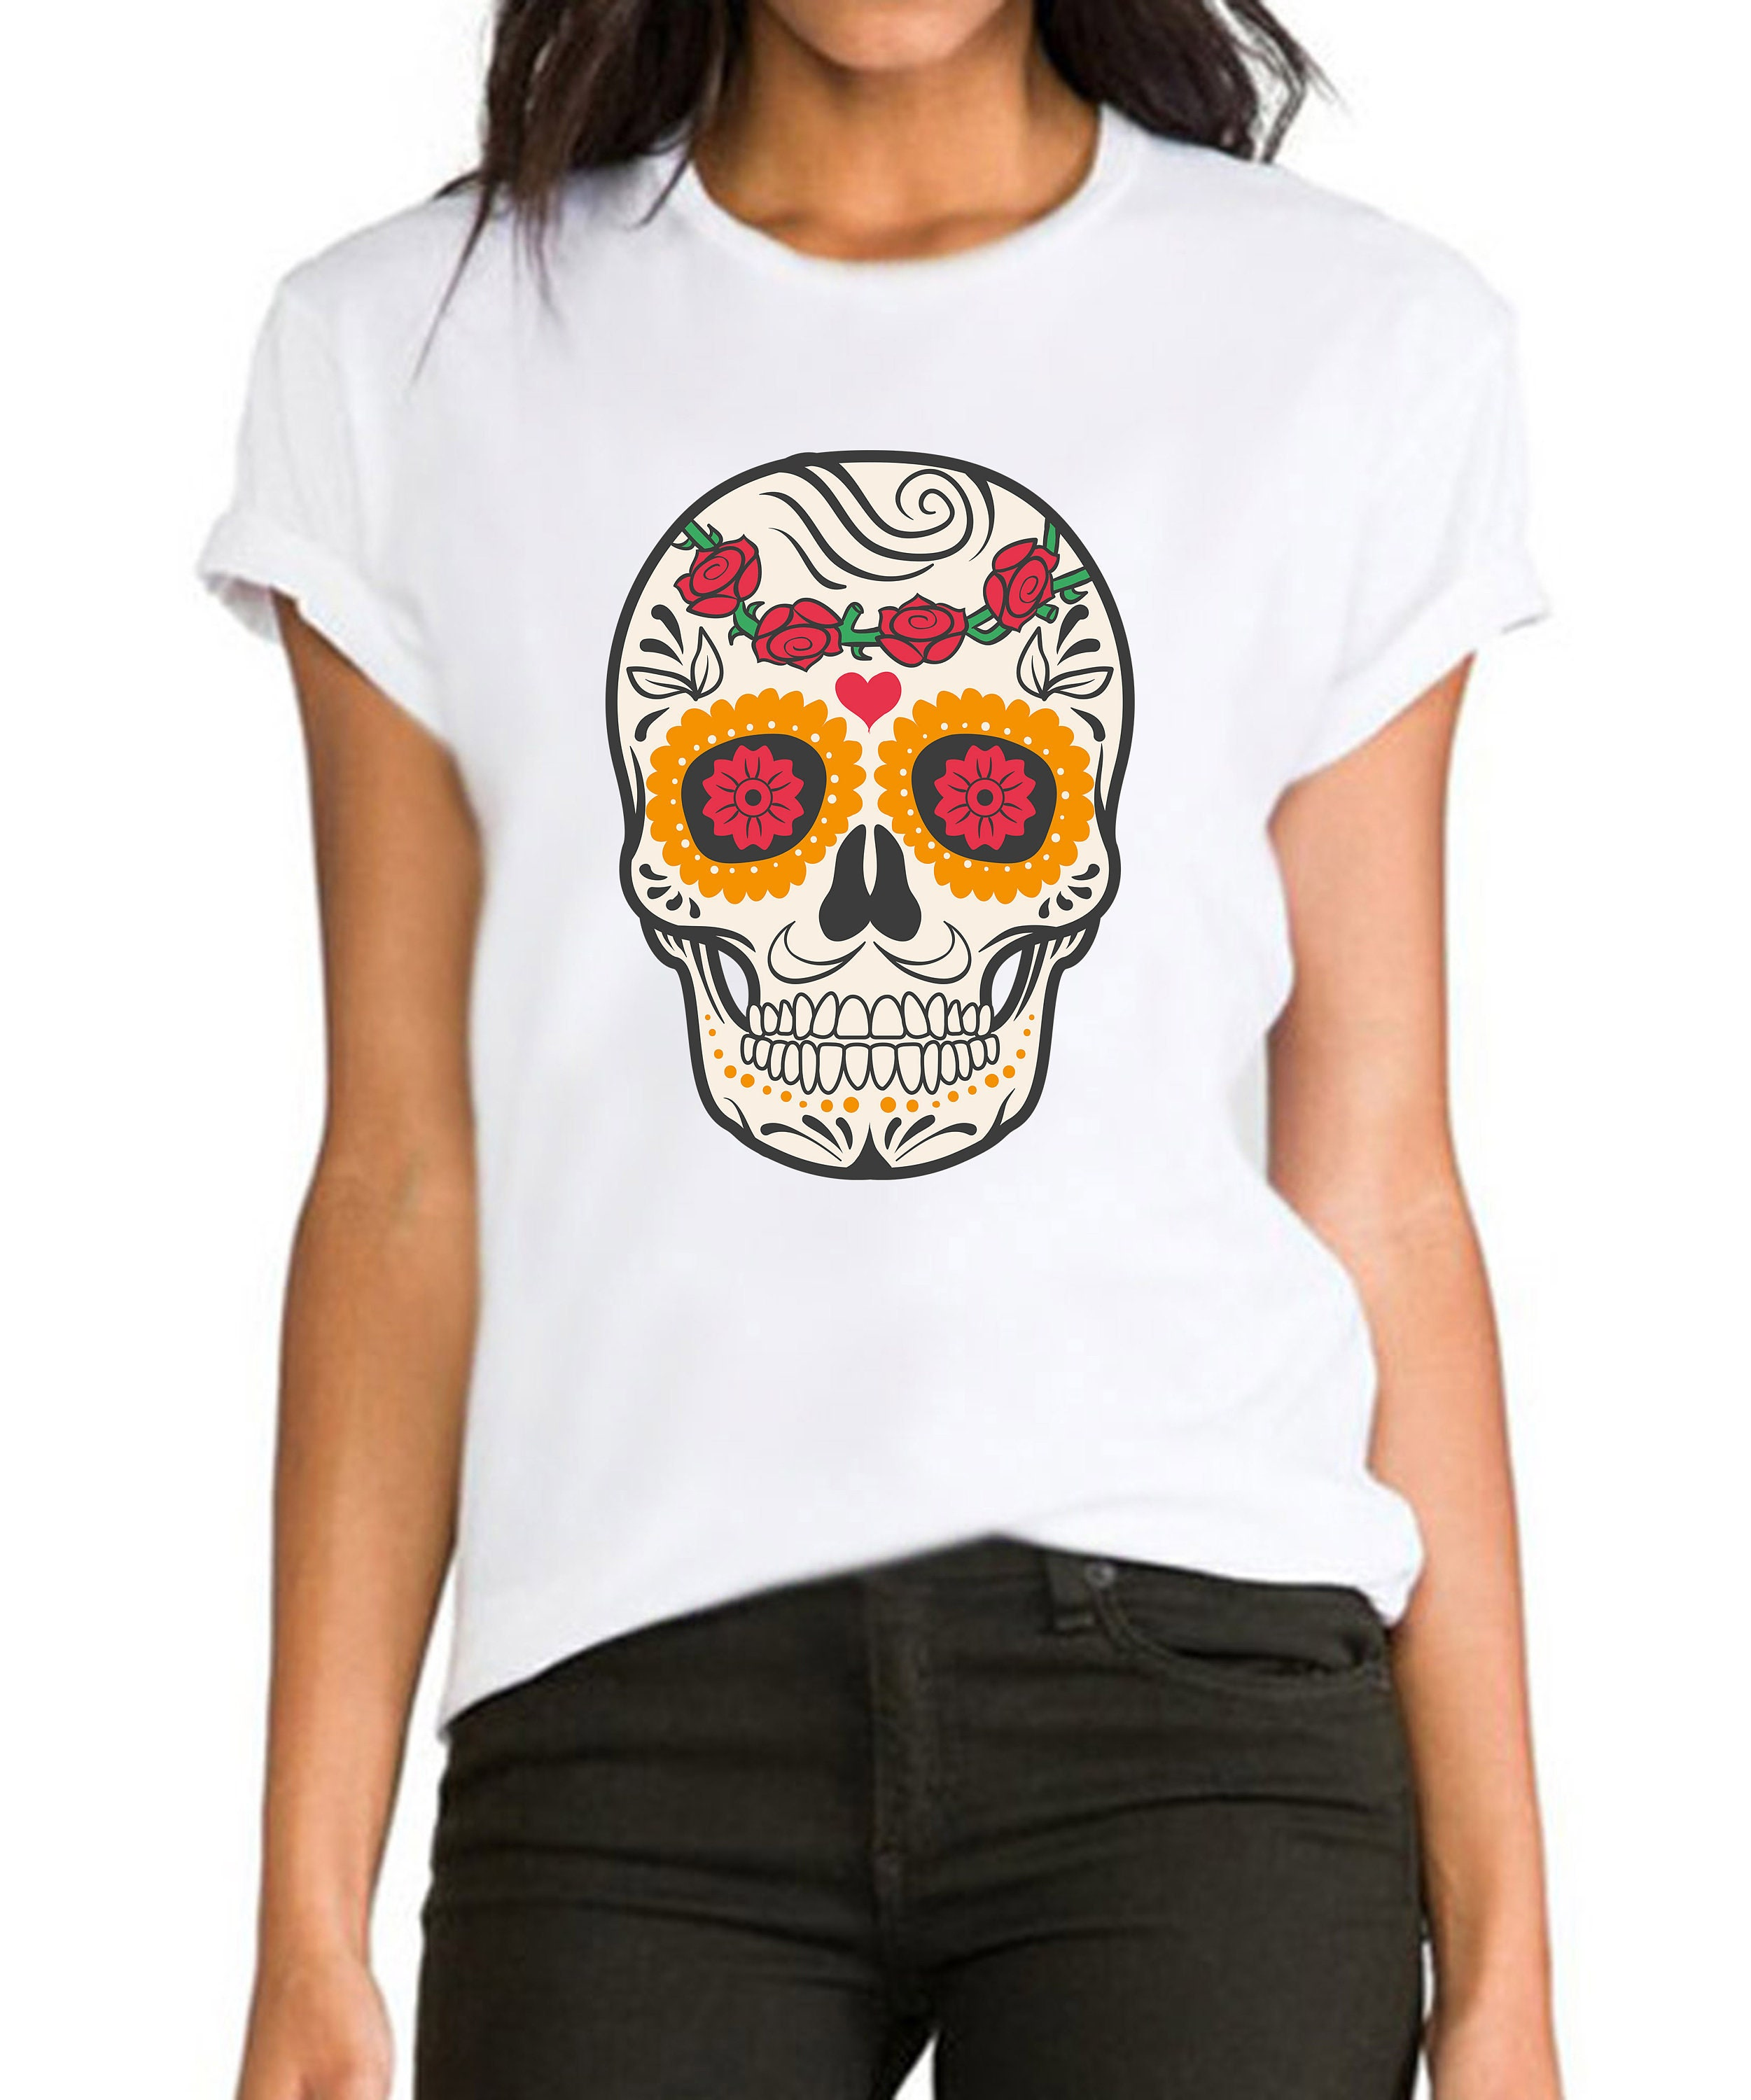 3a2e8402ccb7 Floral suger skull 3 lucky colourful ladies women s girls